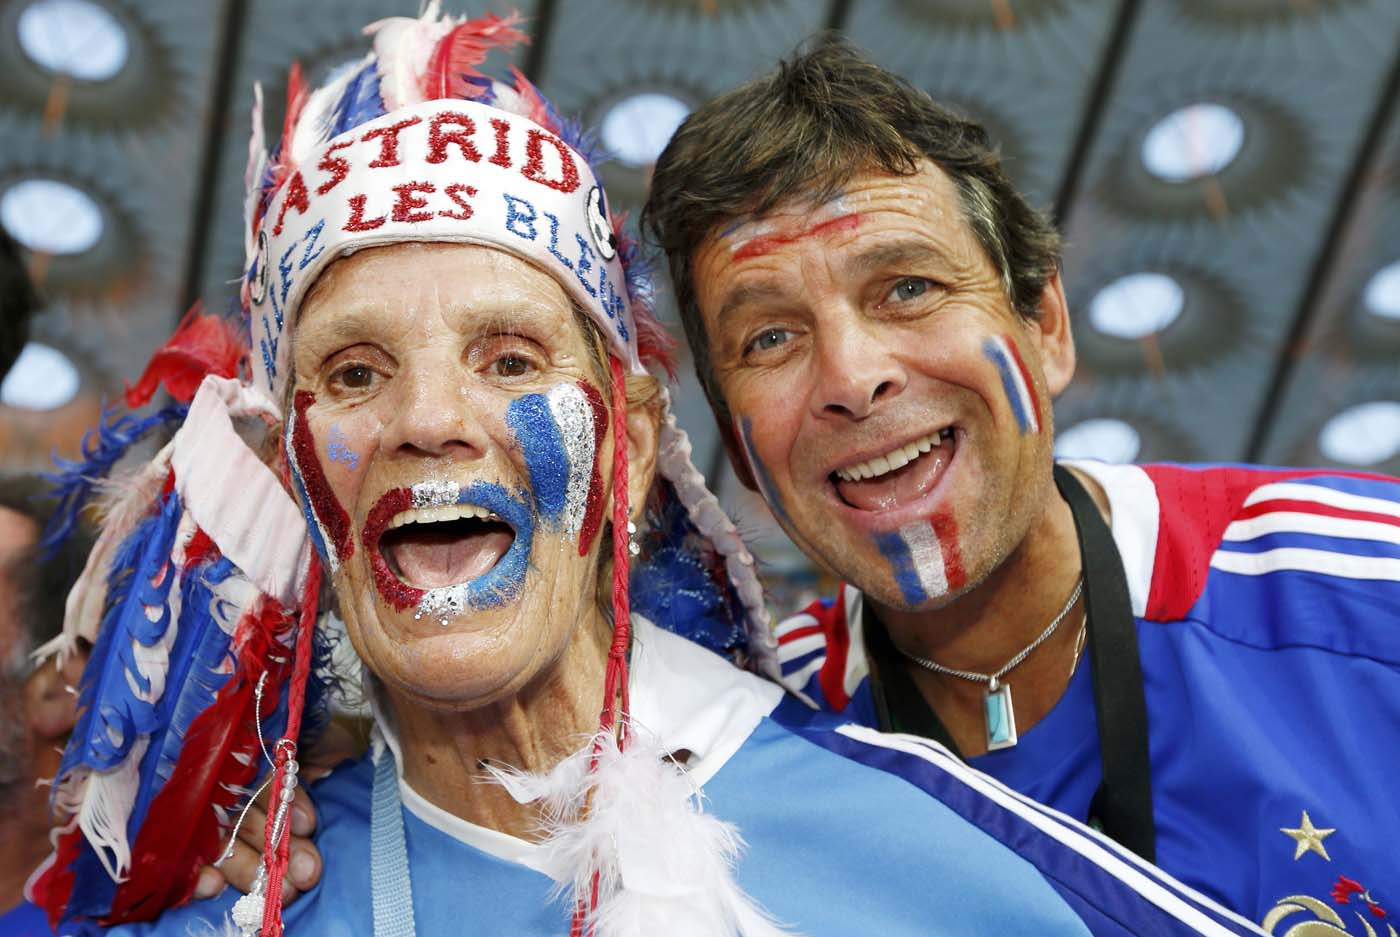 France's soccer fans cheer before the Group D Euro 2012 soccer match between Sweden and France at Olympic stadium in Kiev, June 19, 2012. (Eddie Keogh/Reuters)